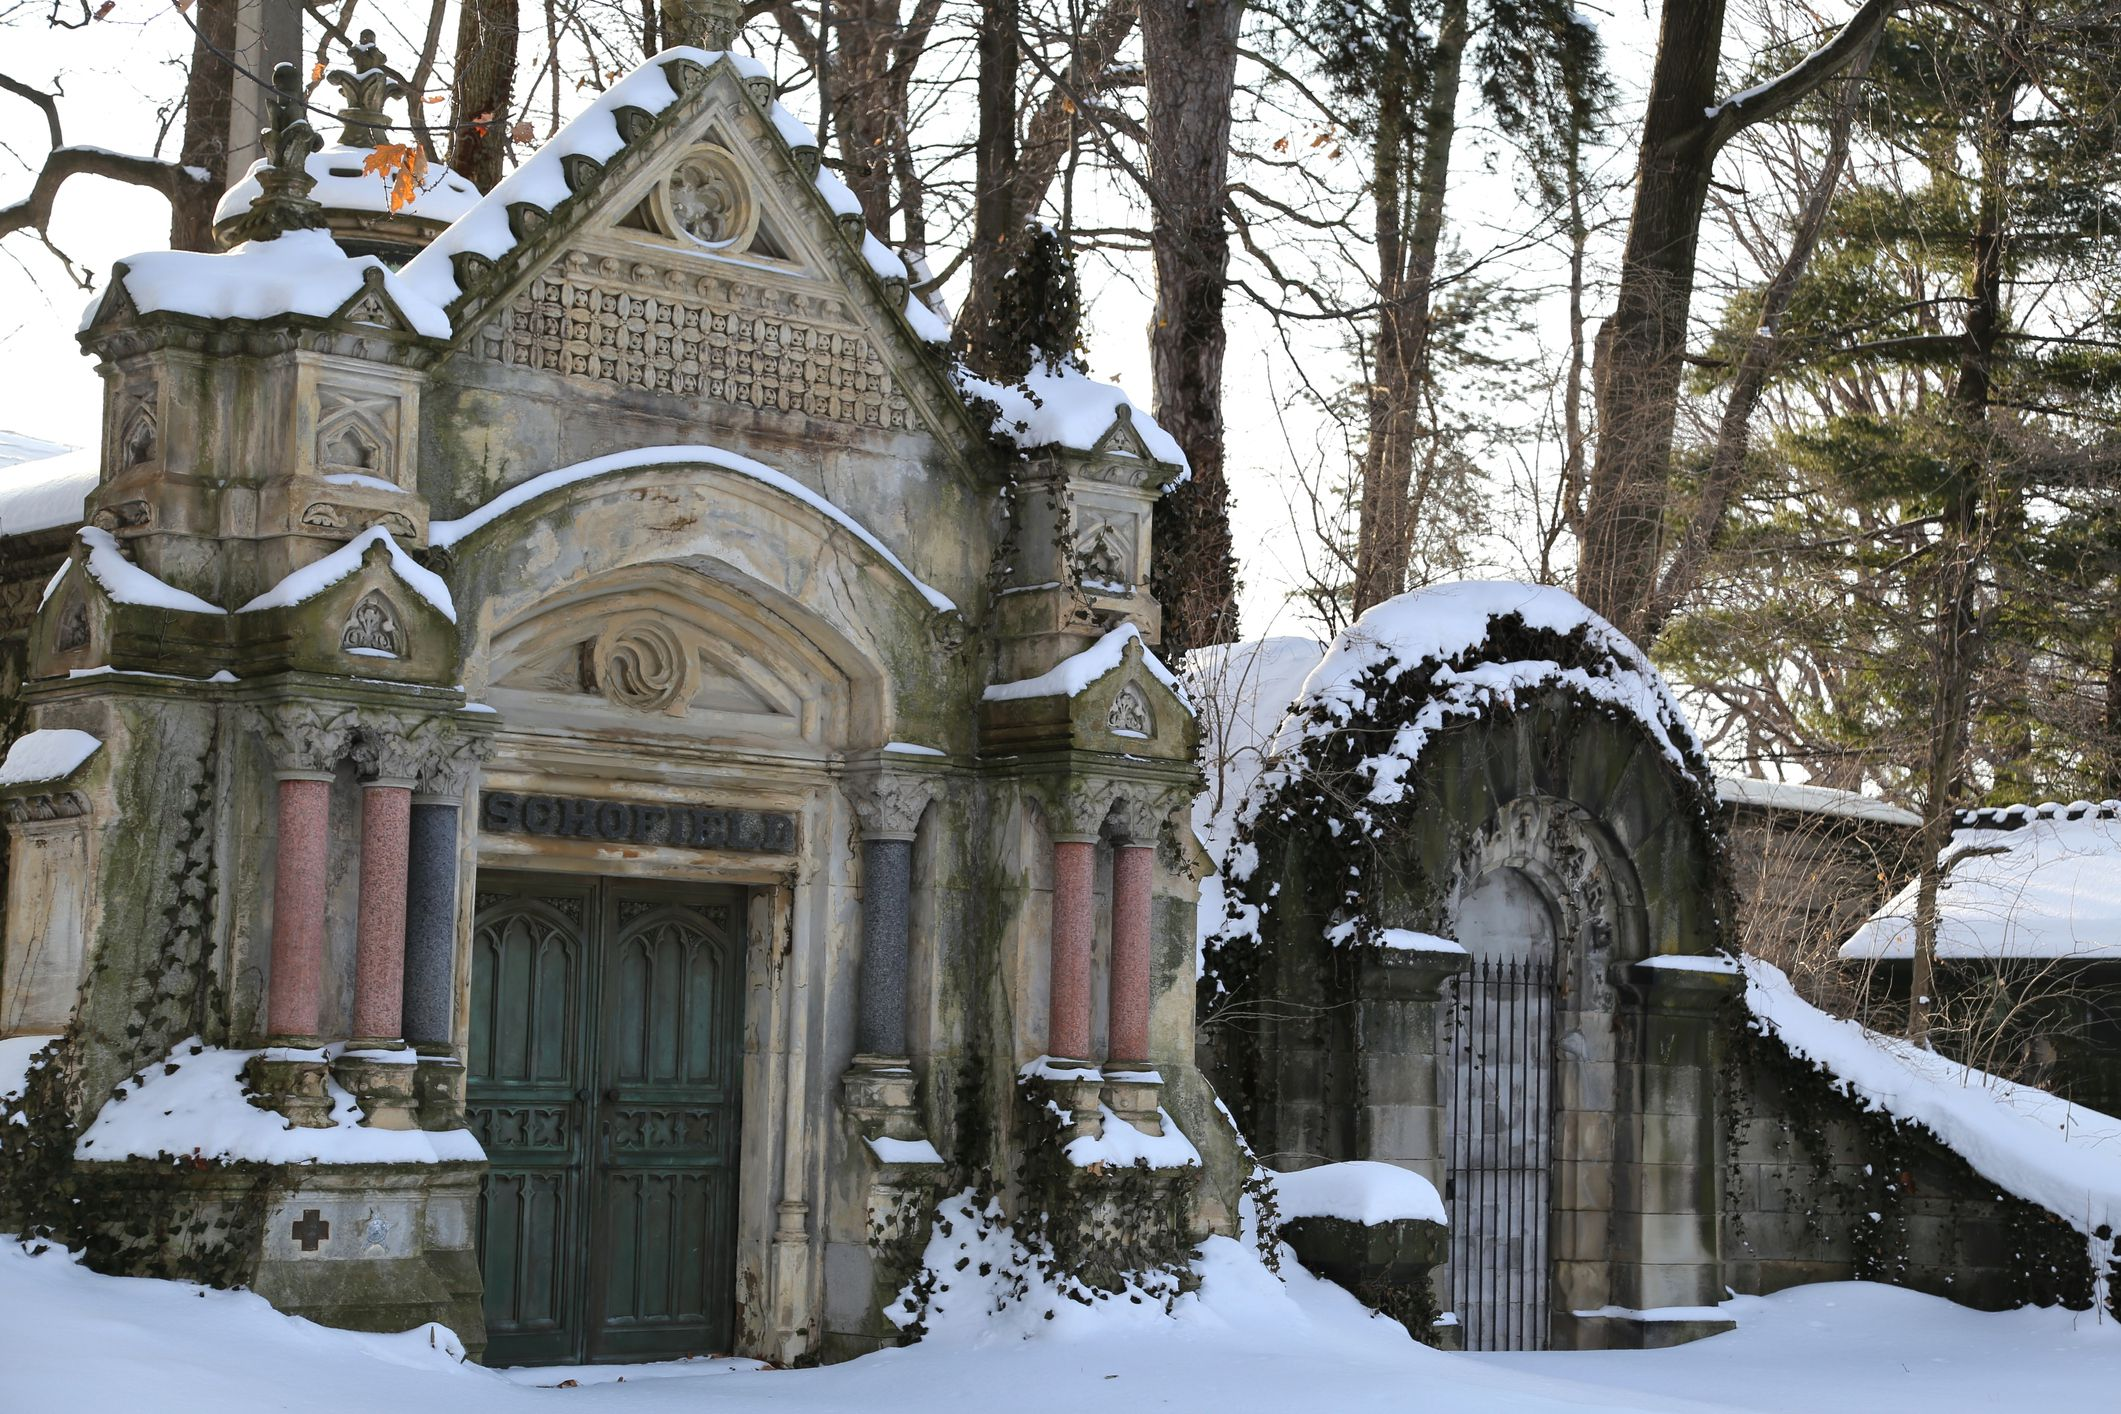 Mausoleums in the snow covered hillside, Lake View Cemetery, Cleveland, Ohio, United States